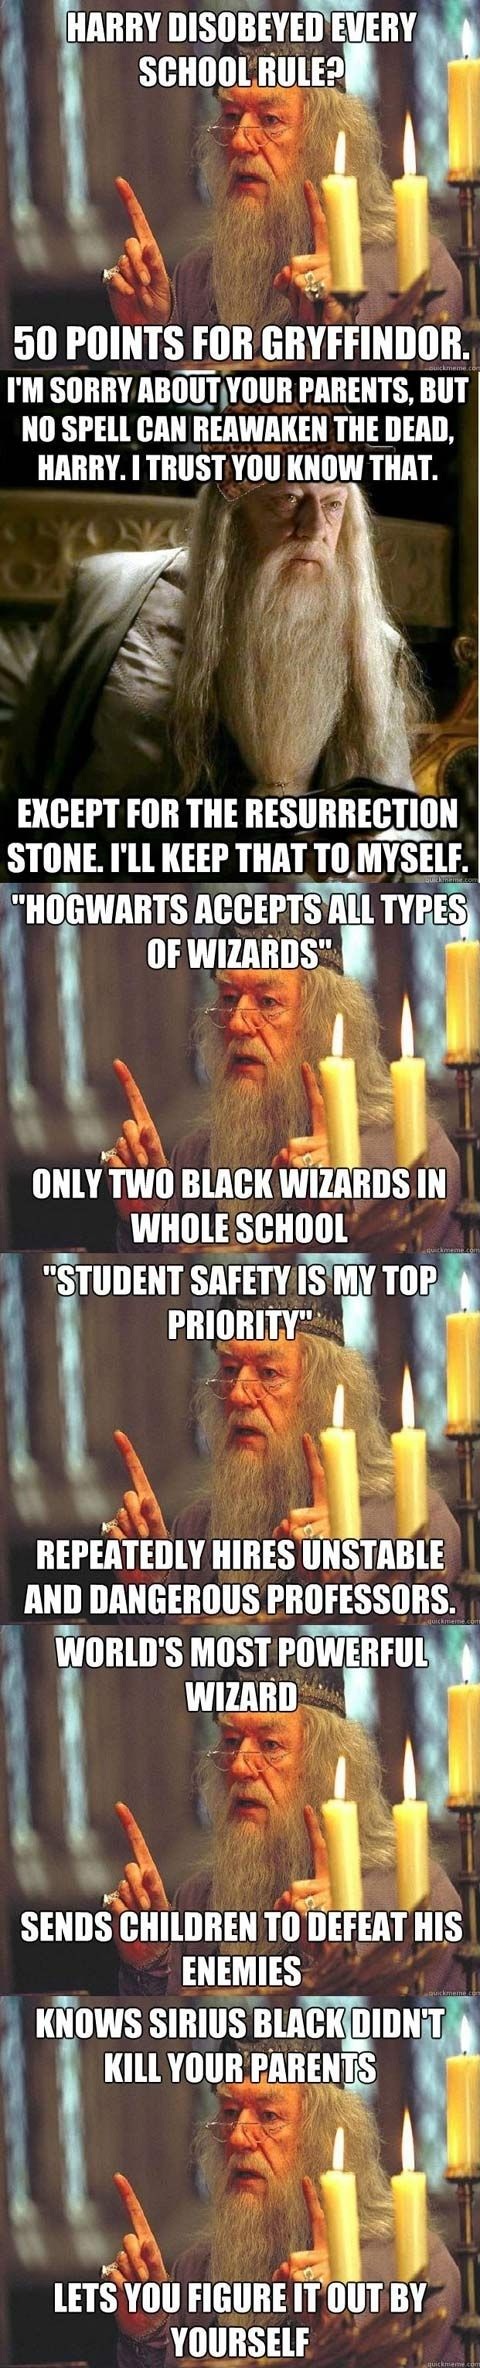 These are incorrect. The resurrection stone doesn't fully bring them back their spirit just comes for a visit. And Dumbledore had no idea Sirius was innocent until the end because he didn't know they had switched secret keepers. If you're gonna make memes read the books you stupid muggles.